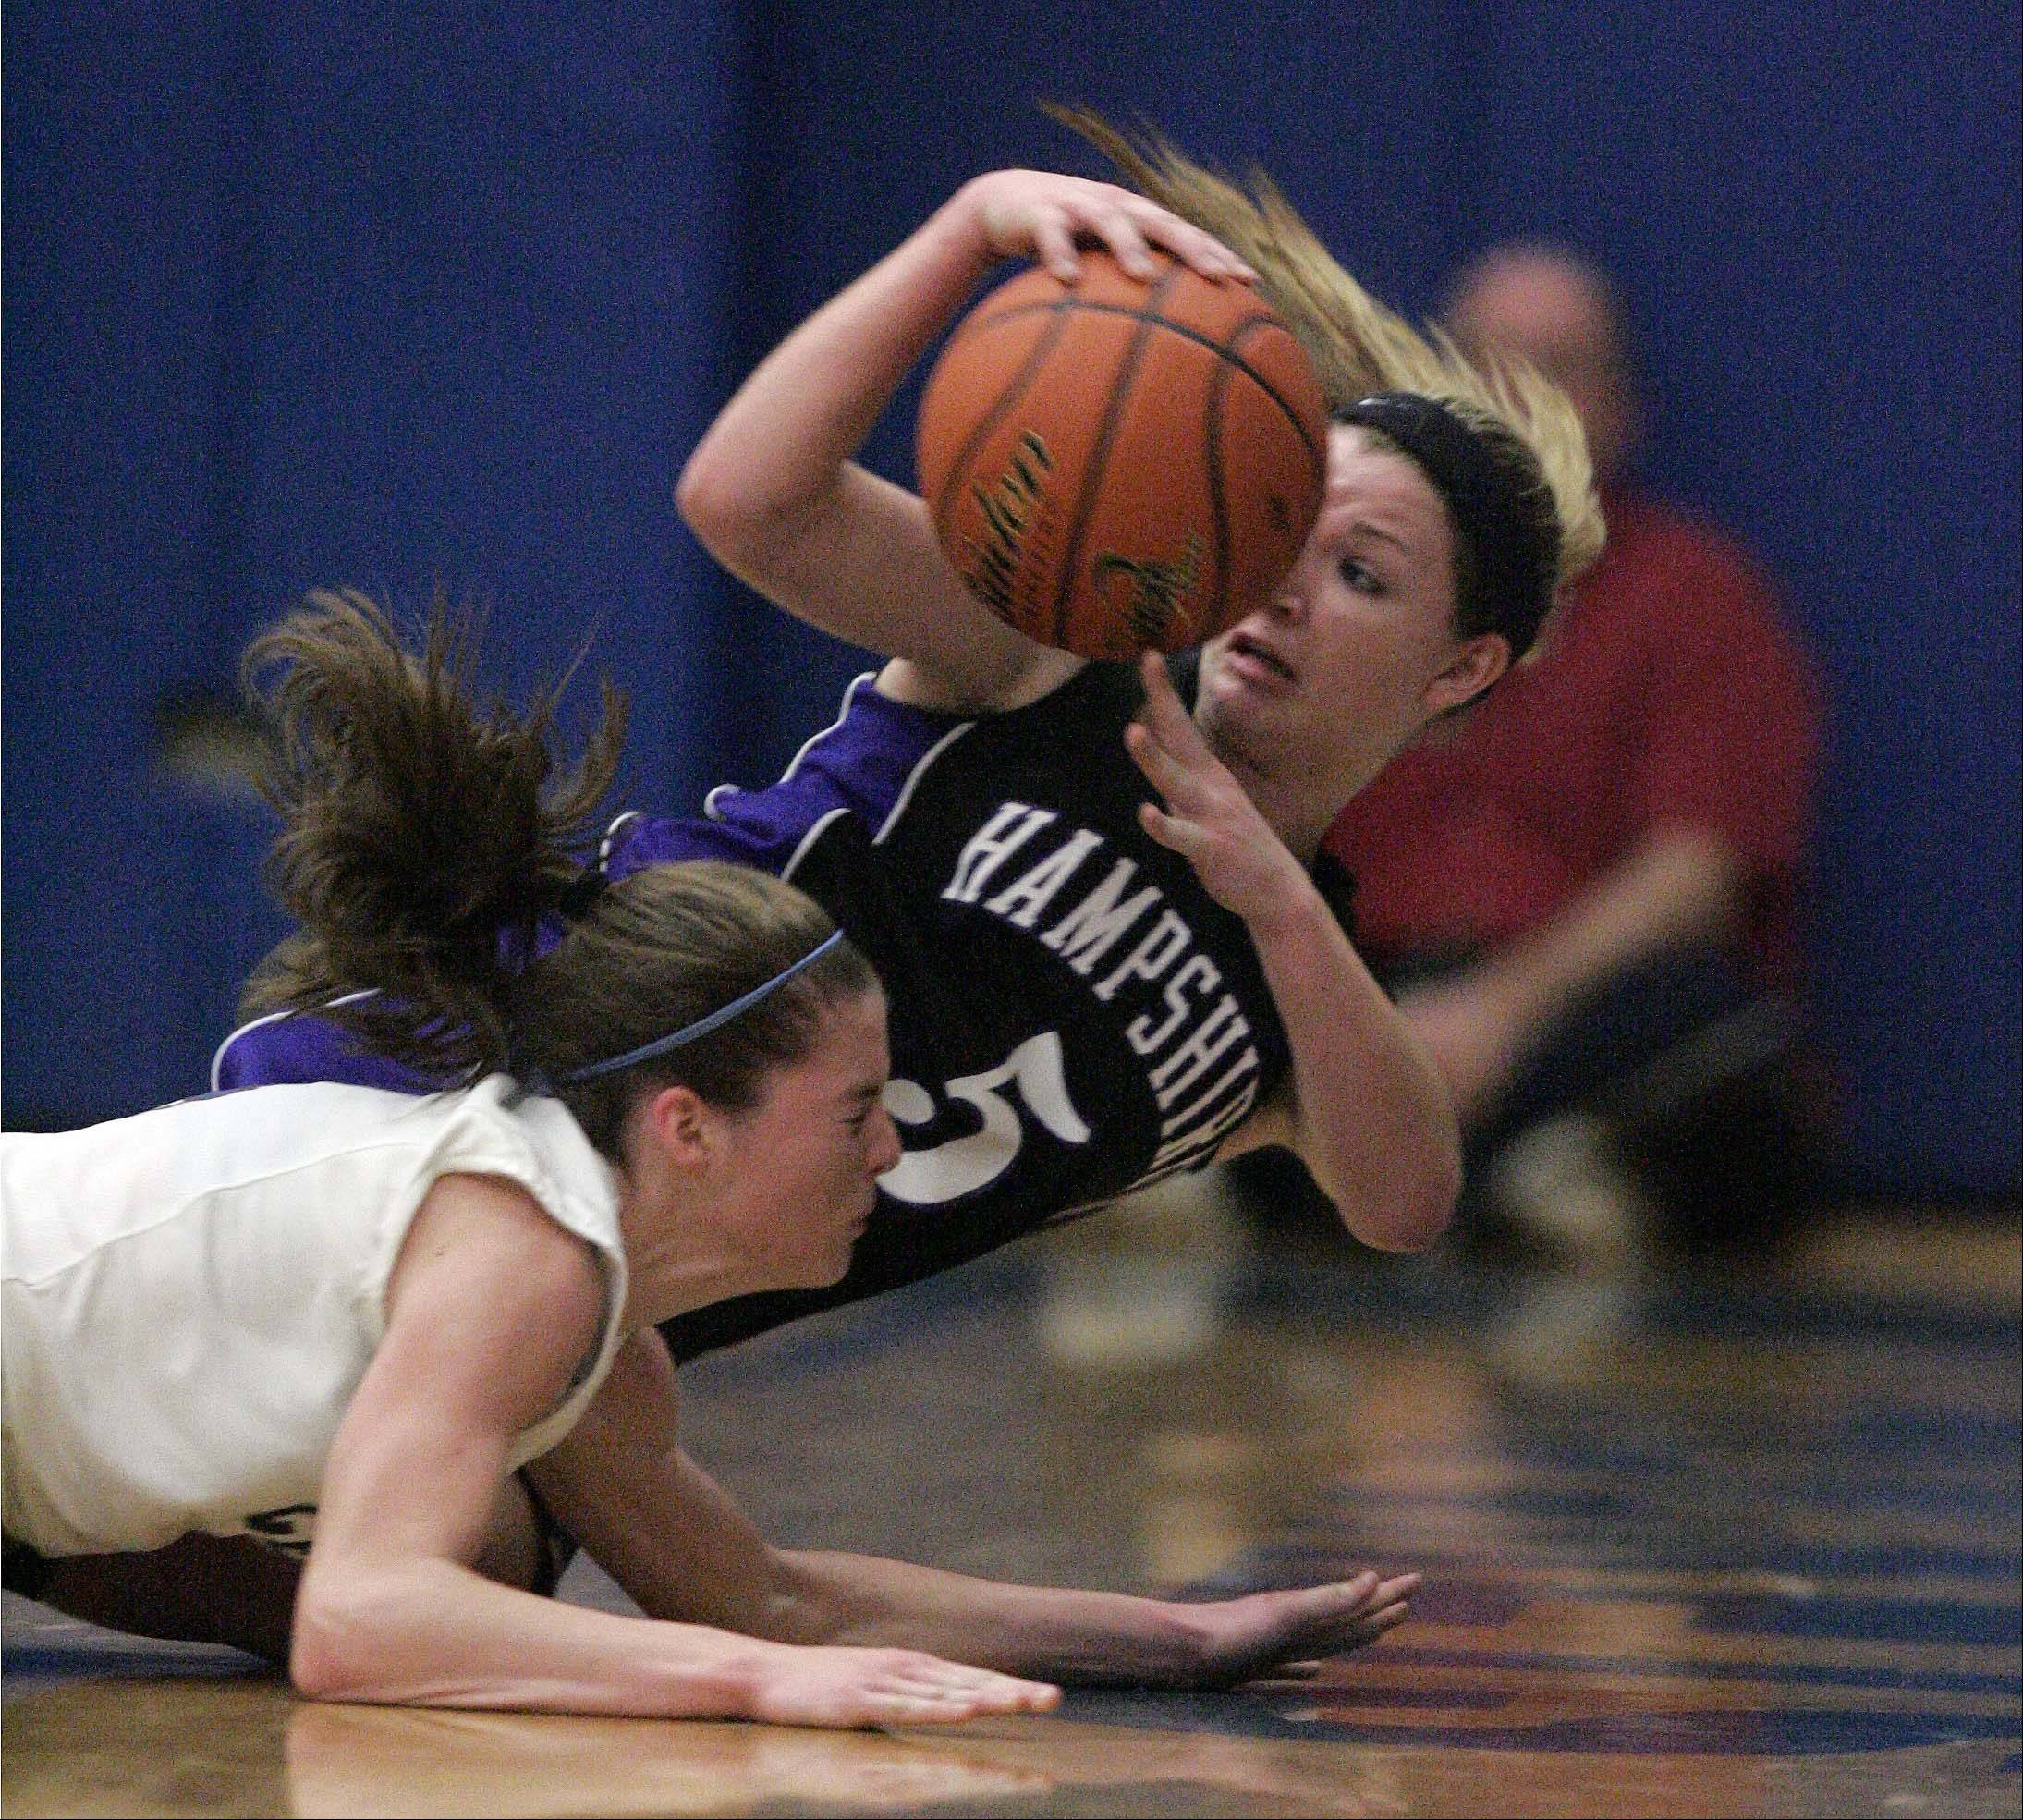 Hampshire guard Sara Finn (5) dives for a loose ball as Burlington Central's Kayla Ross (4) tries to gain control also during Hampshire at Burlington Central girls basketball Saturday December 8, 2012.